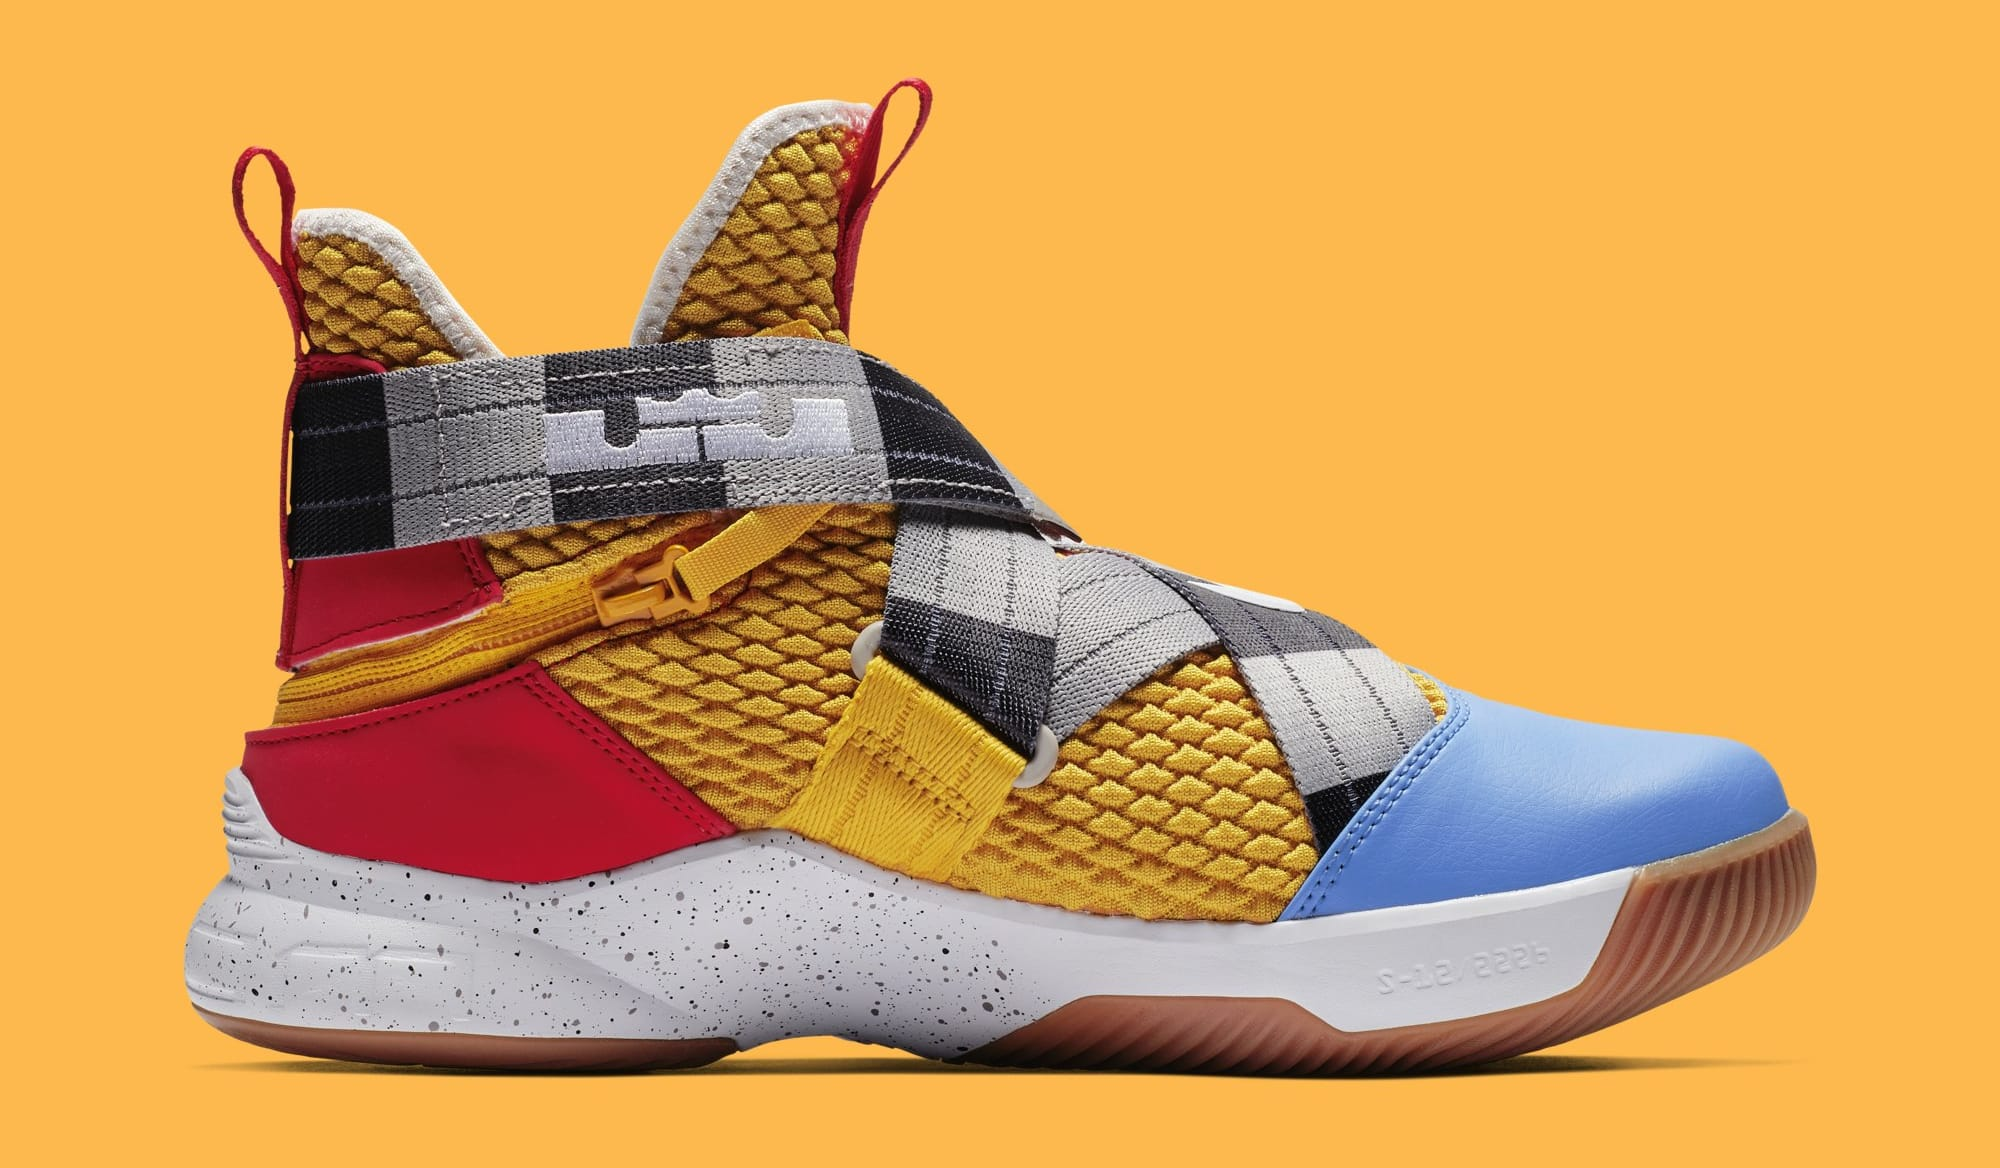 premium selection 2fdc4 e3856 Nike LeBron Soldier 12 FlyEase  Arthur  AV3812-700 Release Date   Sole  Collector